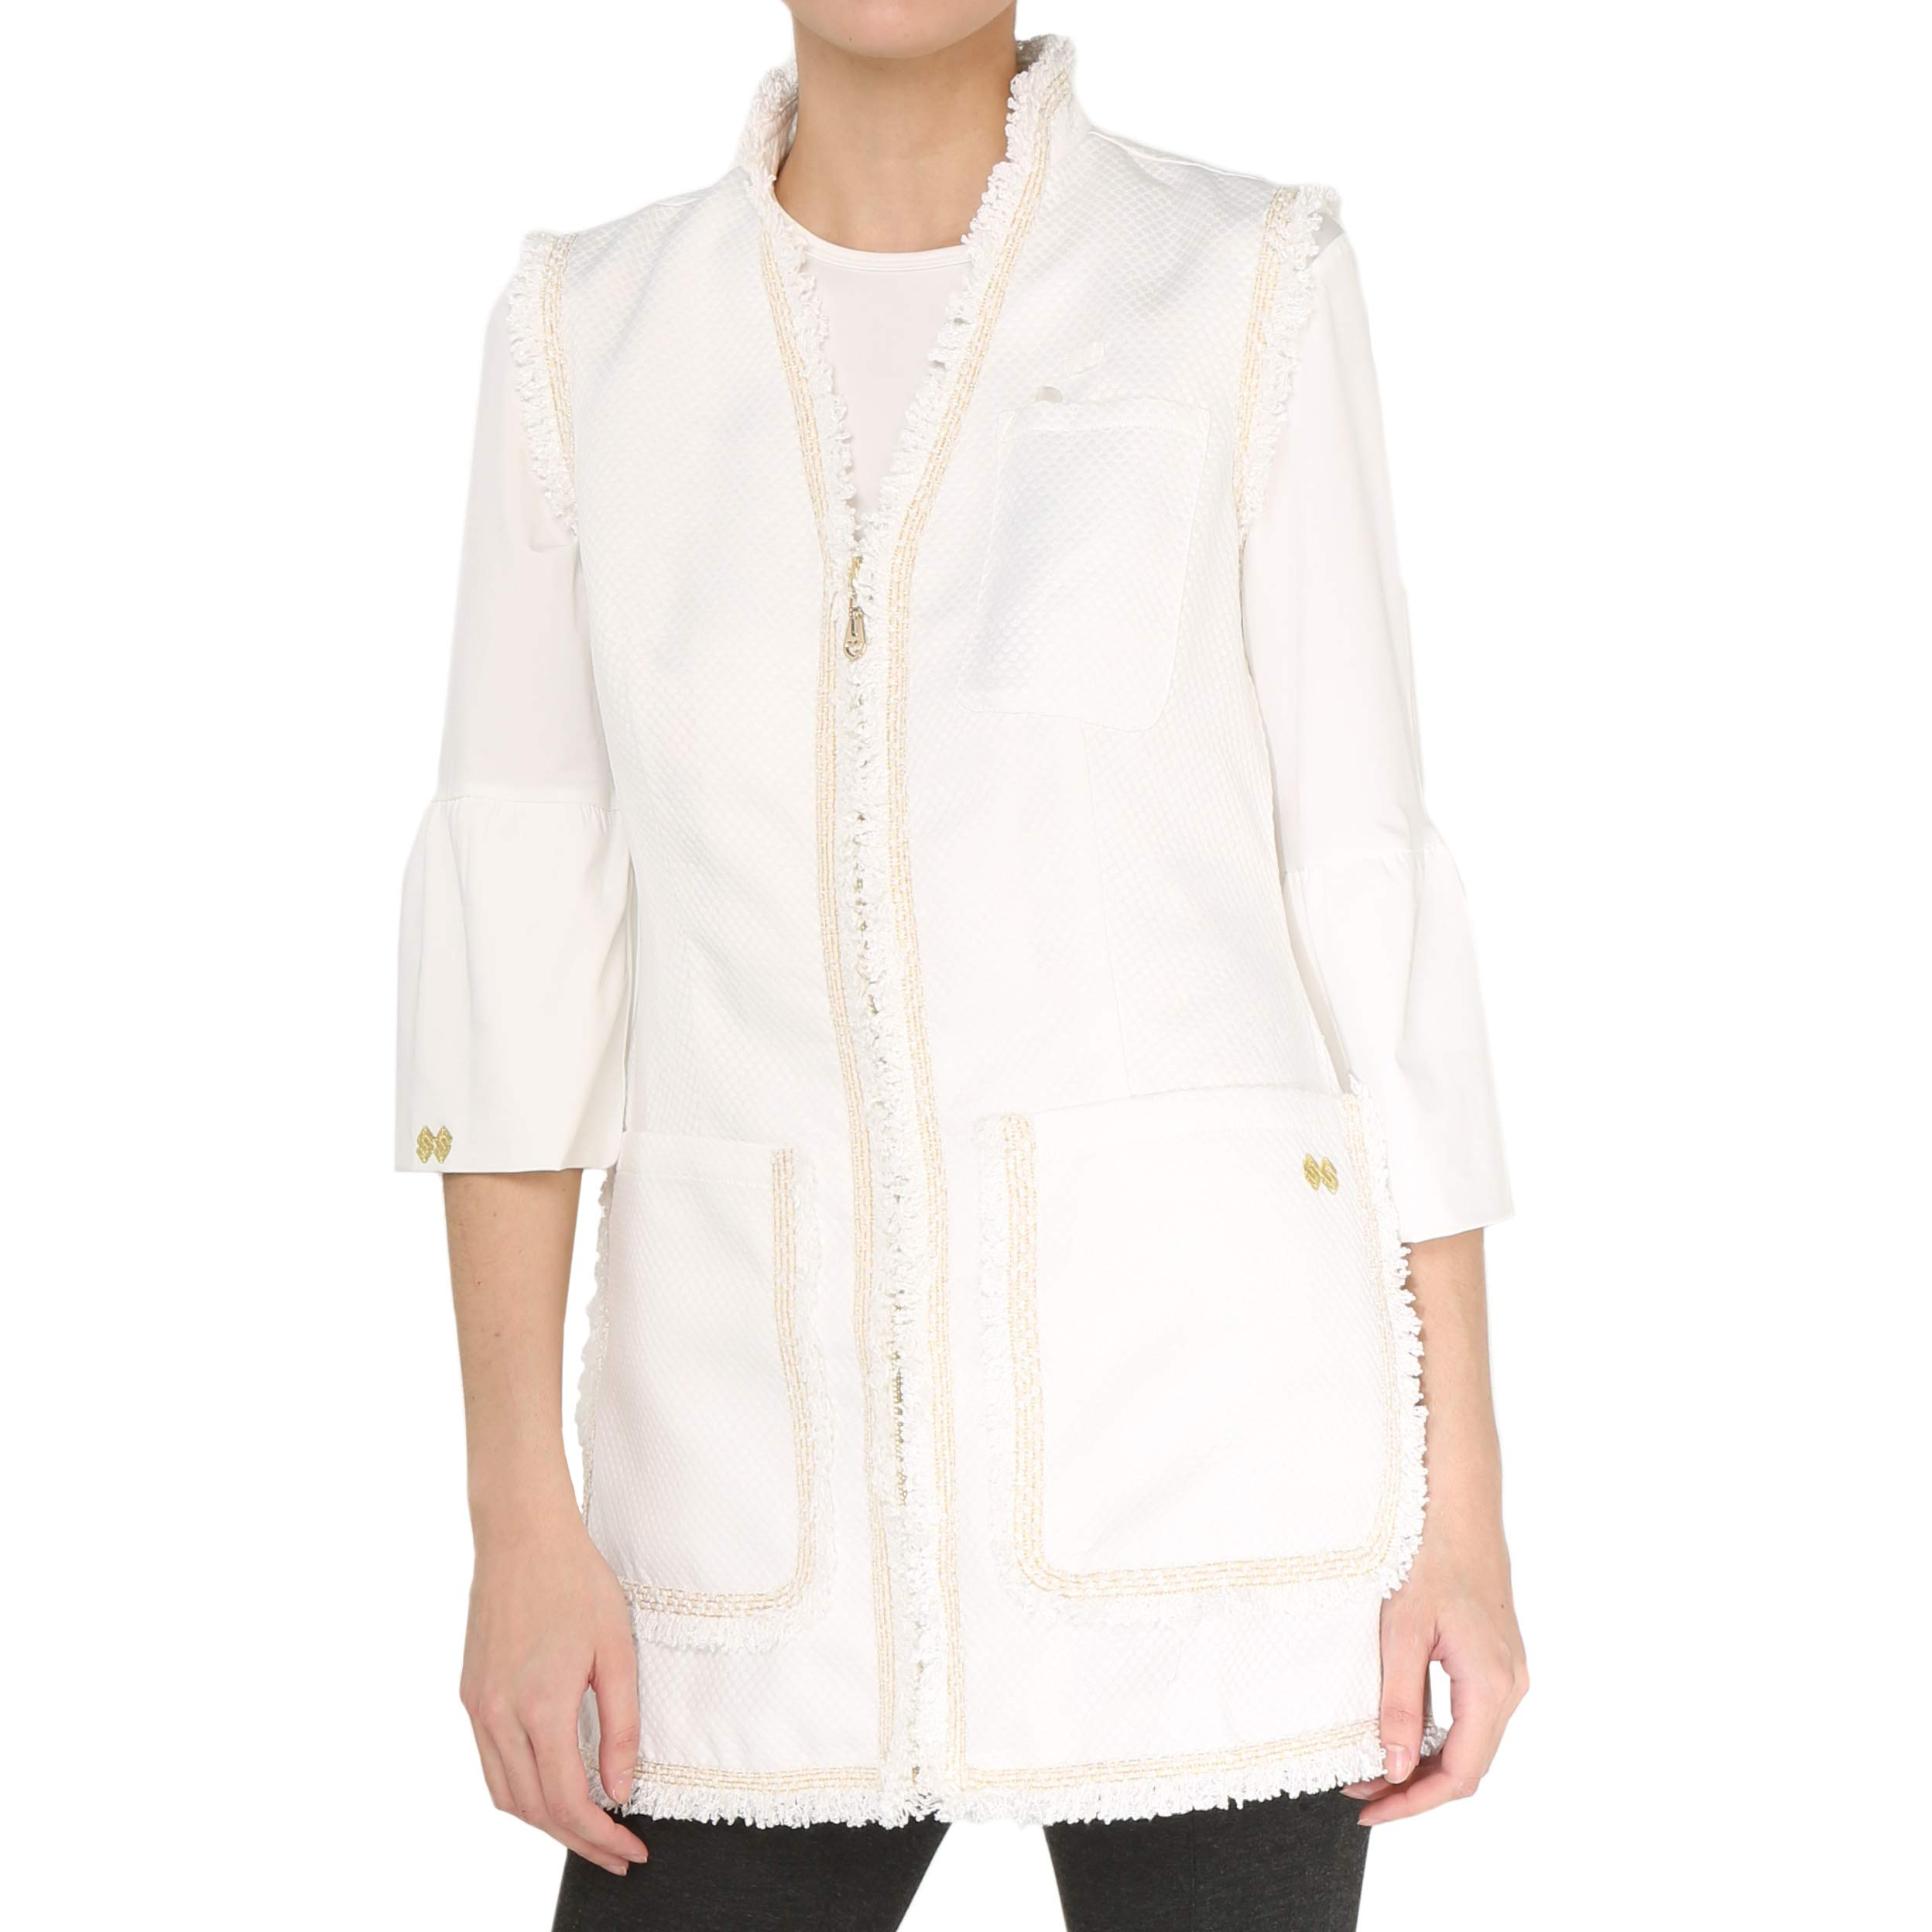 Susan Sova Women's Trendsetter Fashion Lab Coat. Best for Medical & Cosmetic Professionals (Extra Large)